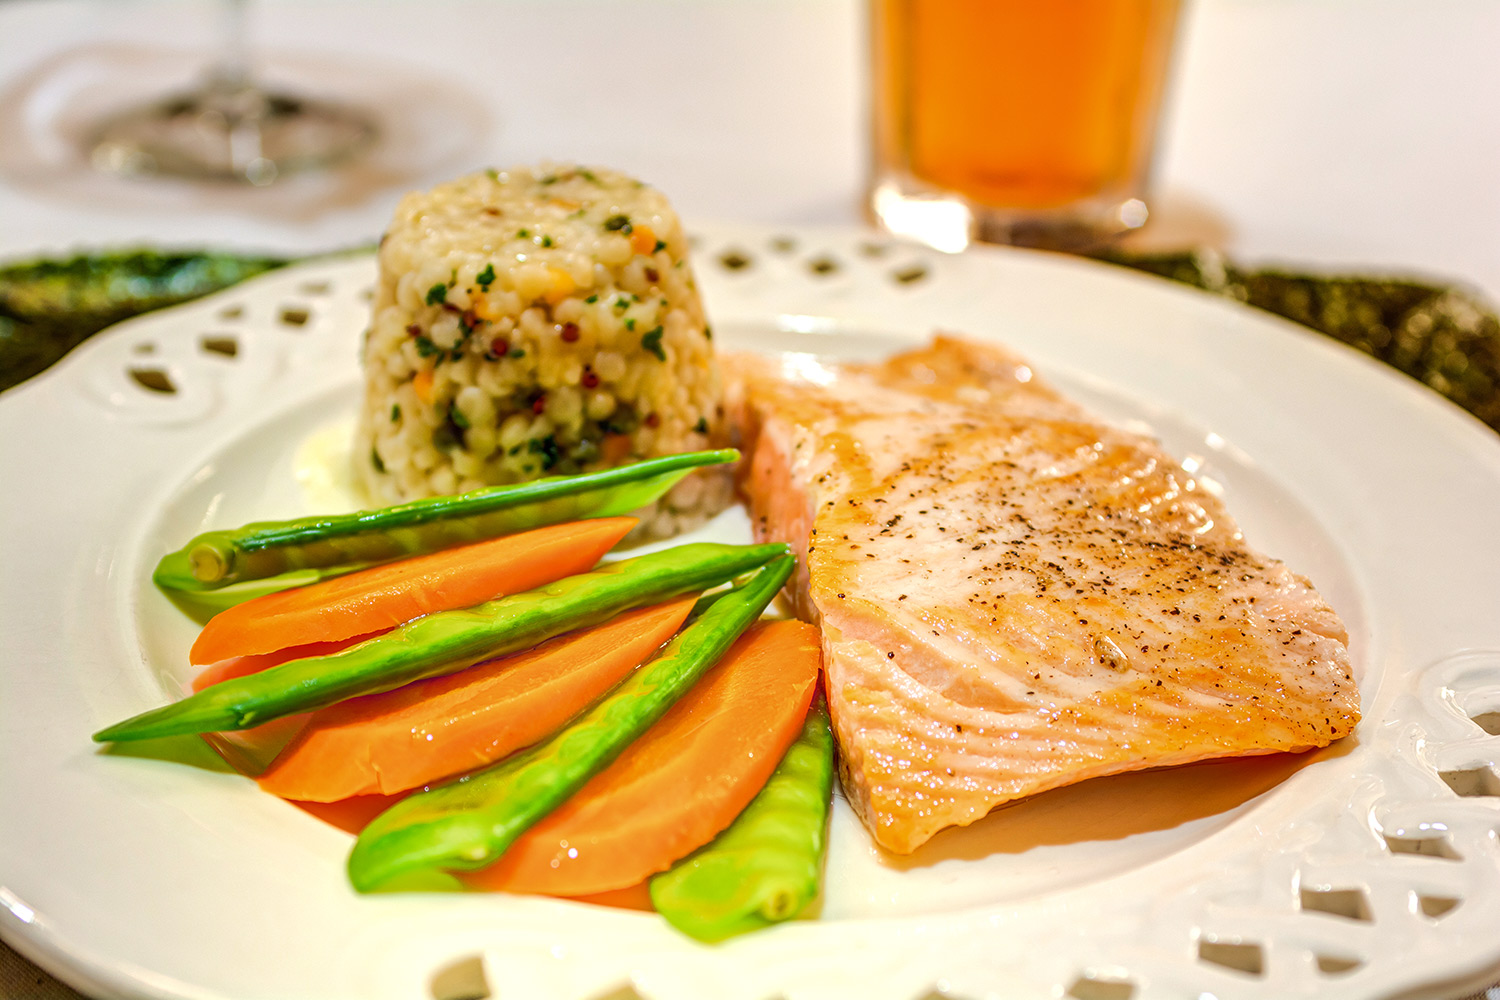 The Rivers at Puyallup | Salmon, rice, and vegetables